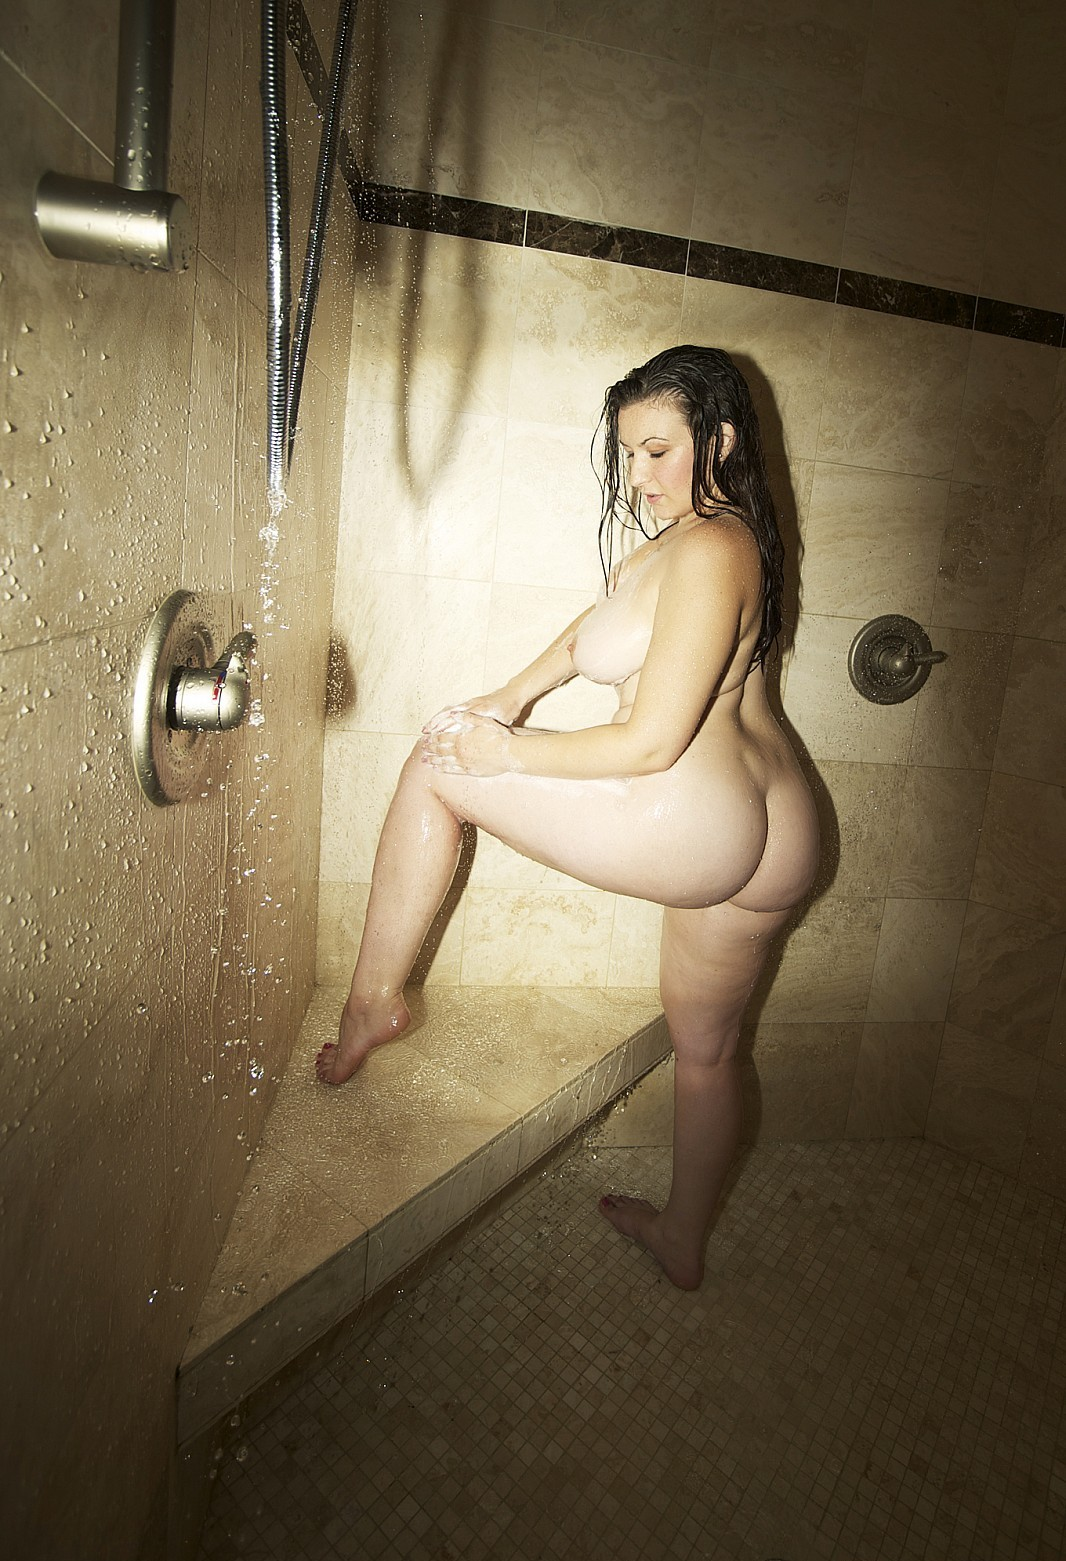 Big tit shower cam video